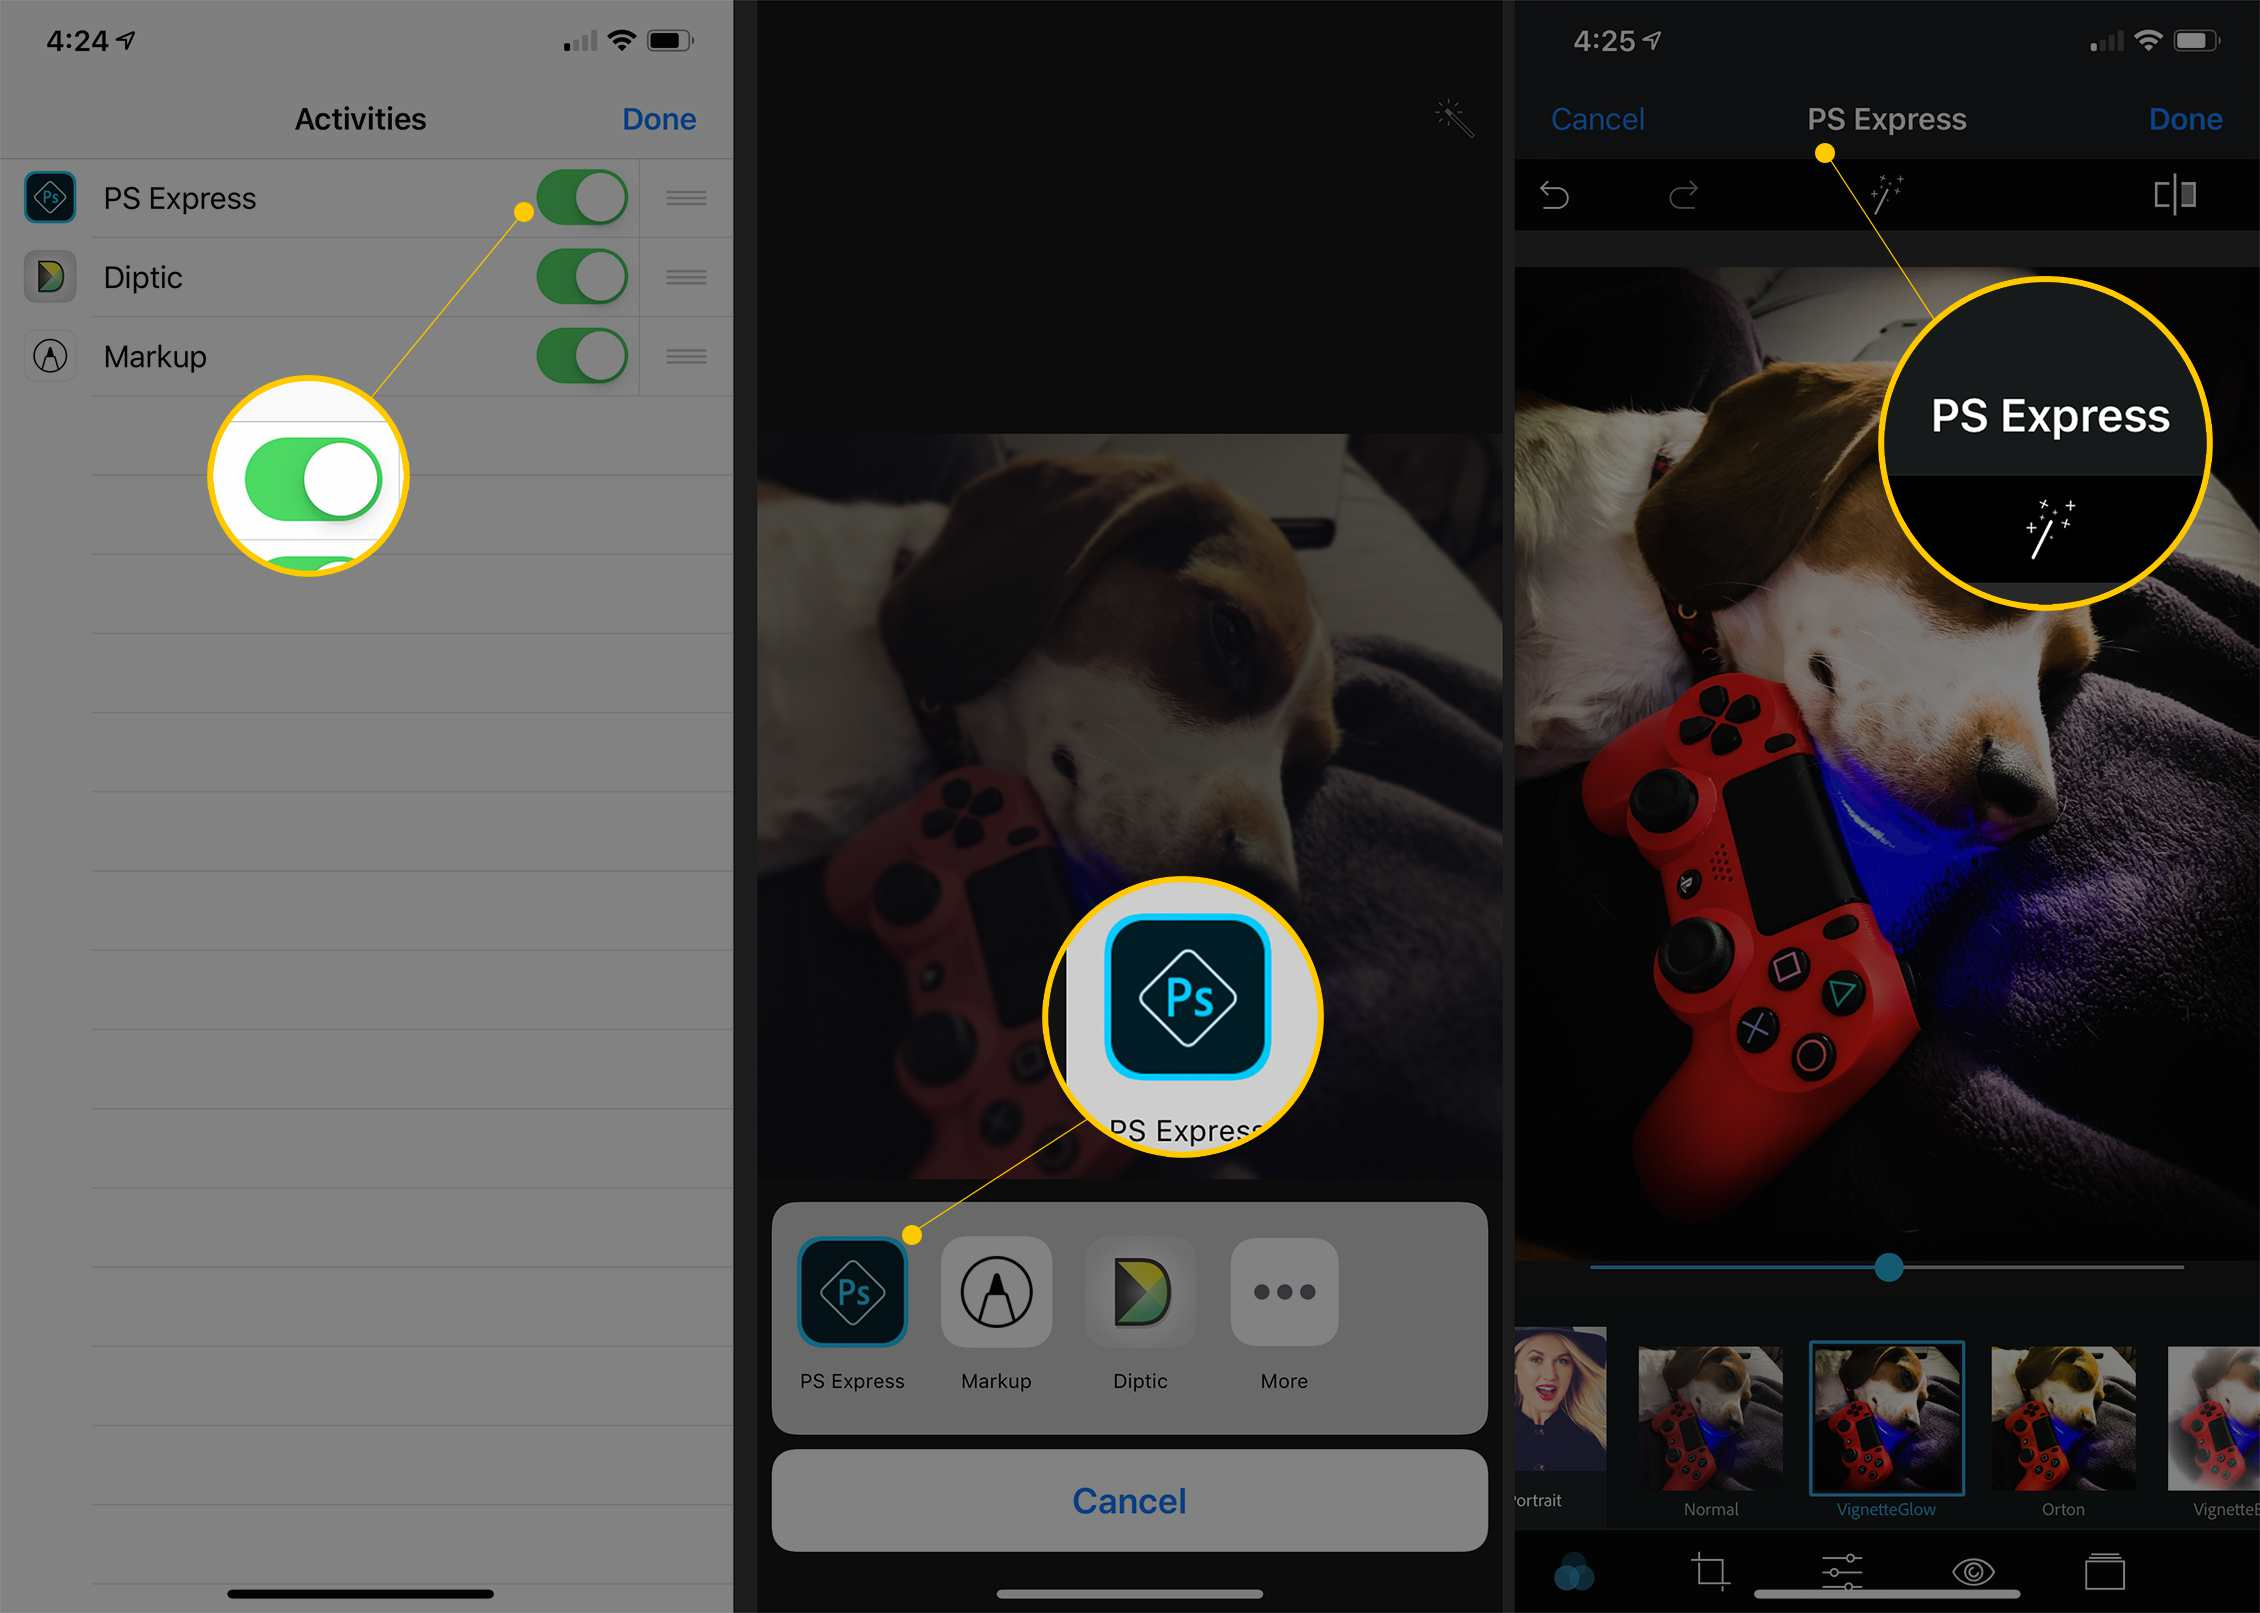 Three iOS screens showing PS Express toggled to ON, PS Express in More photo options and PS Express editing page